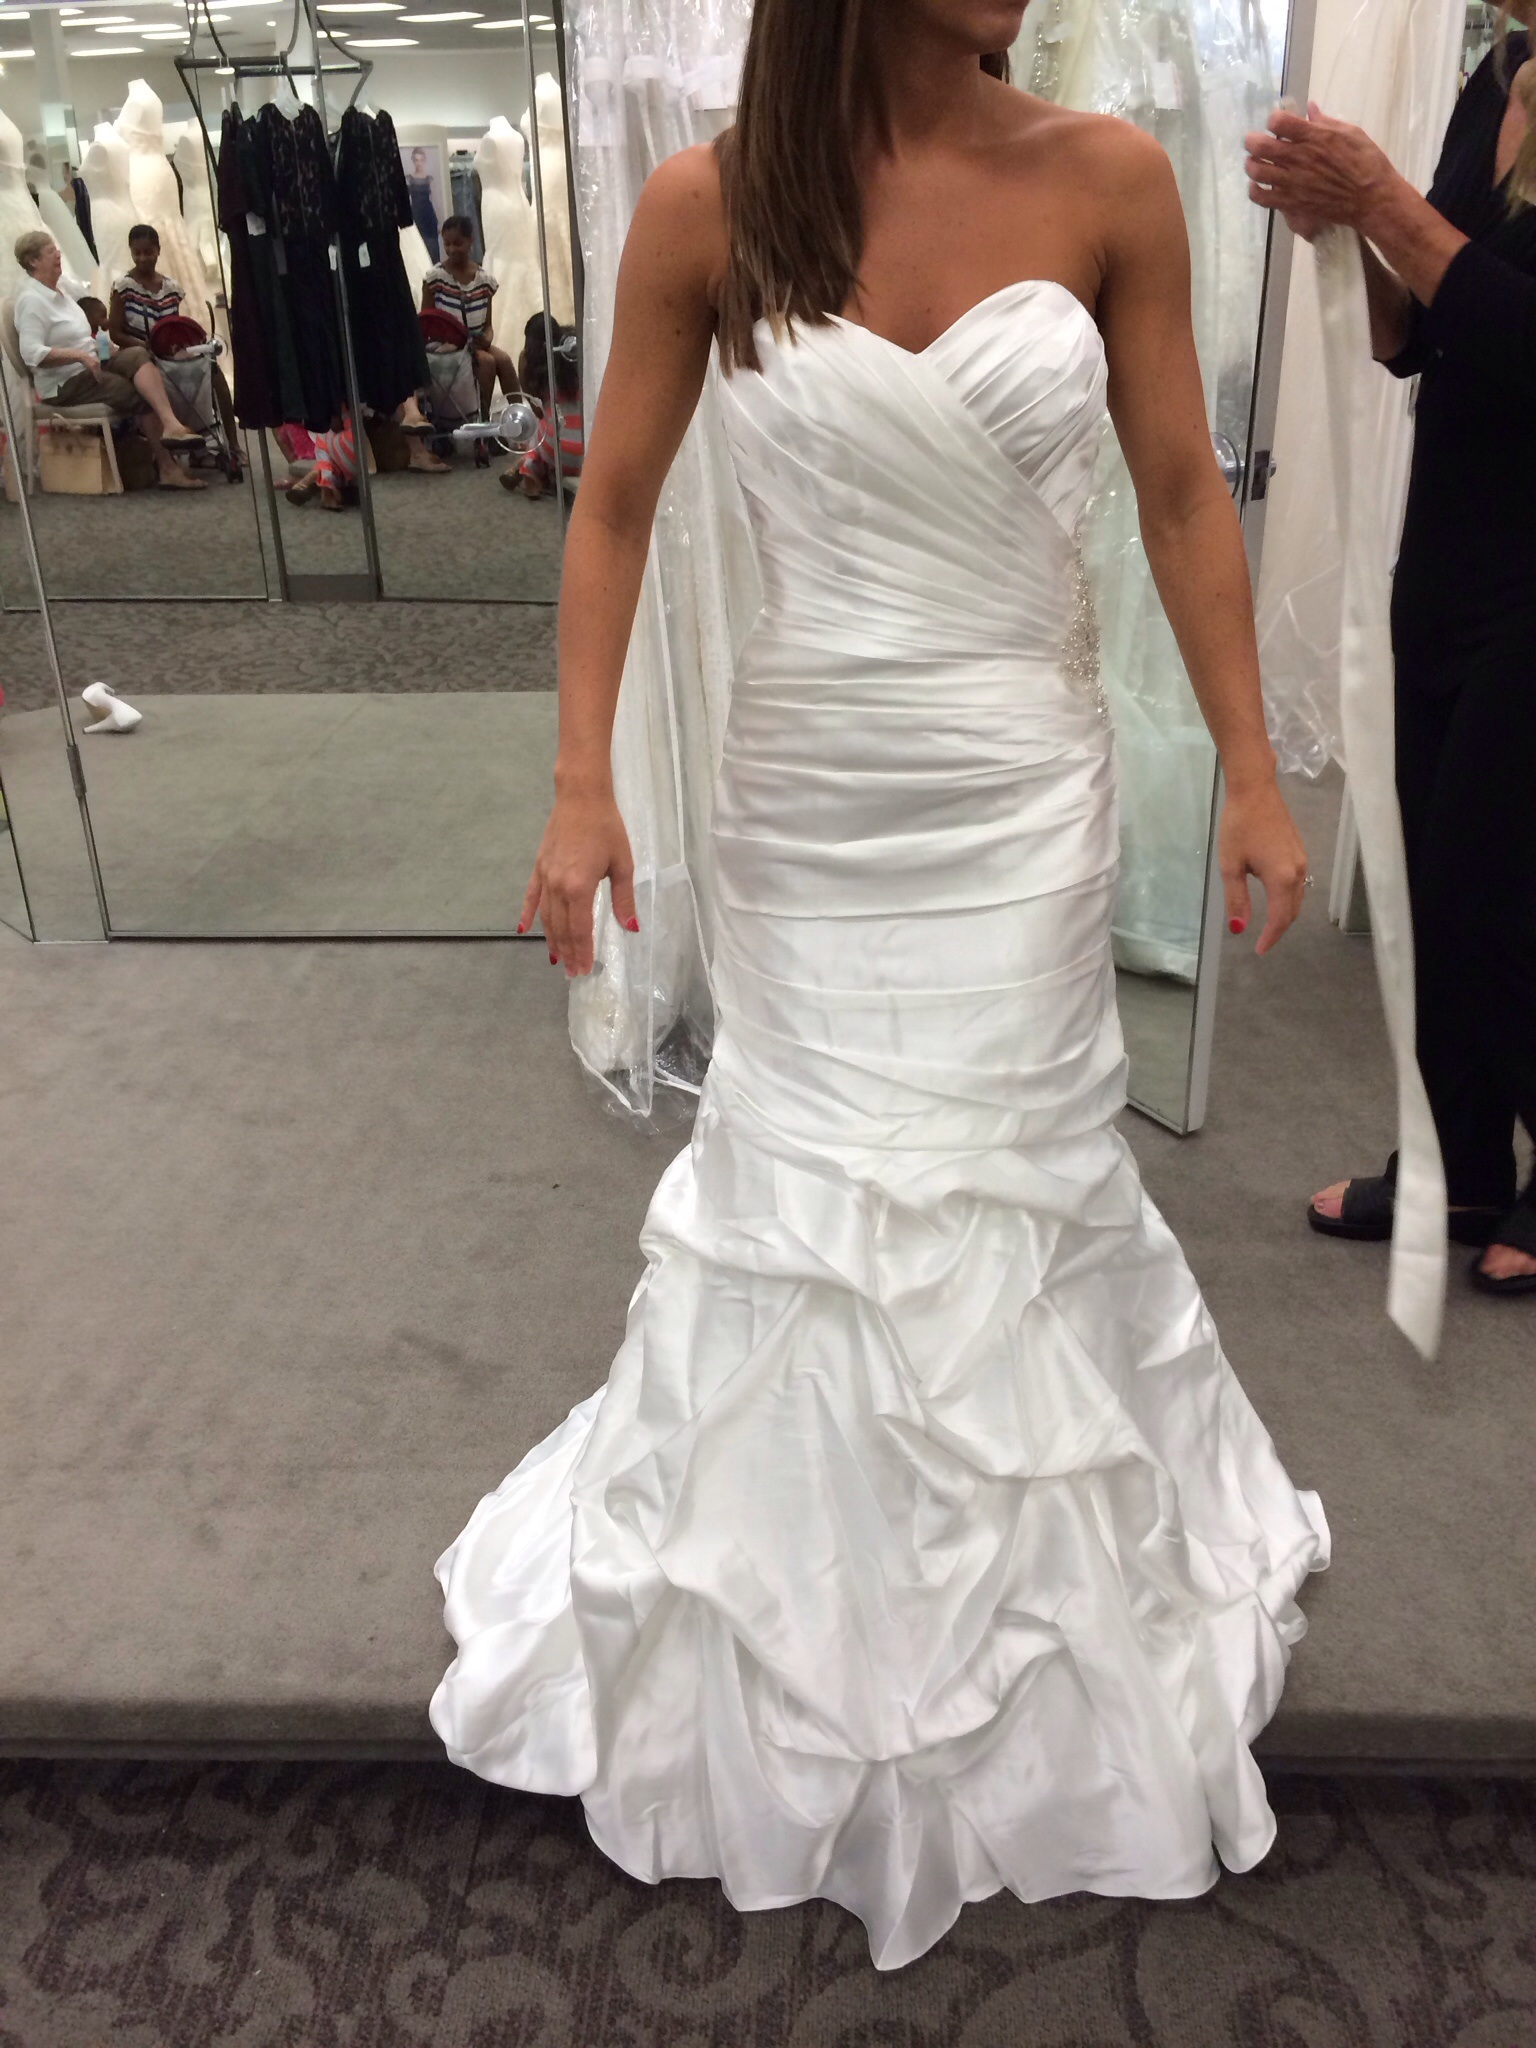 buyers remorse - wedding dress regret — The Knot